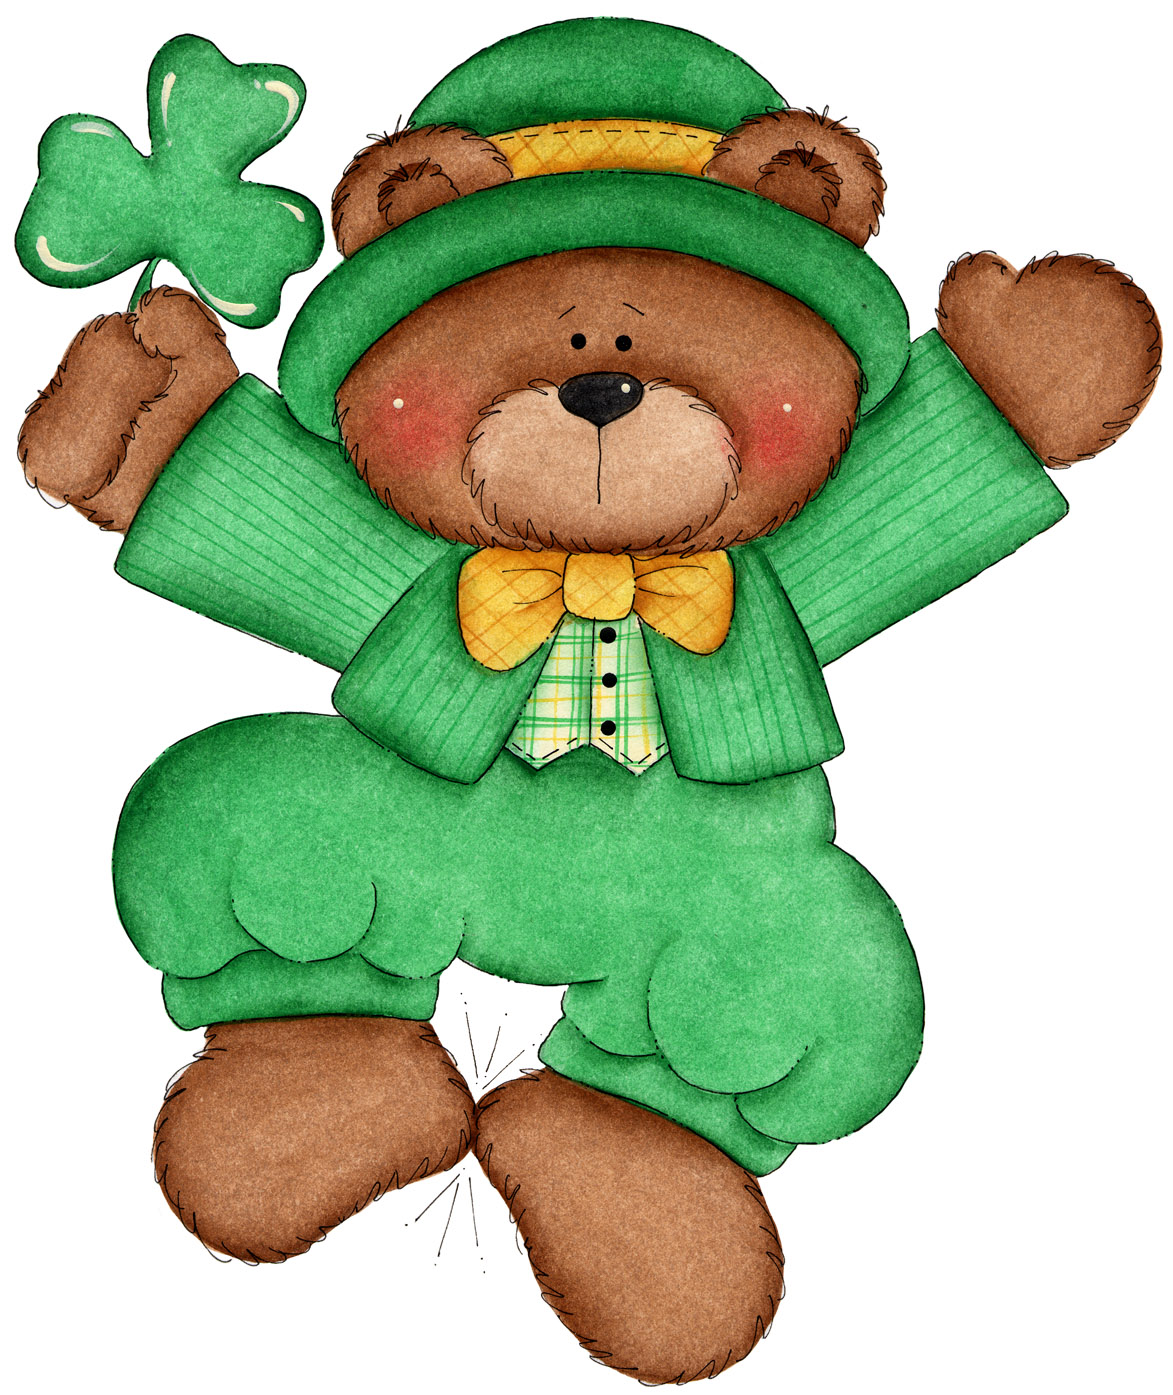 graphic relating to Free Printable Clipart for St Patrick's Day identified as St Patricks Working day Border Clipart Cost-free down load excellent St